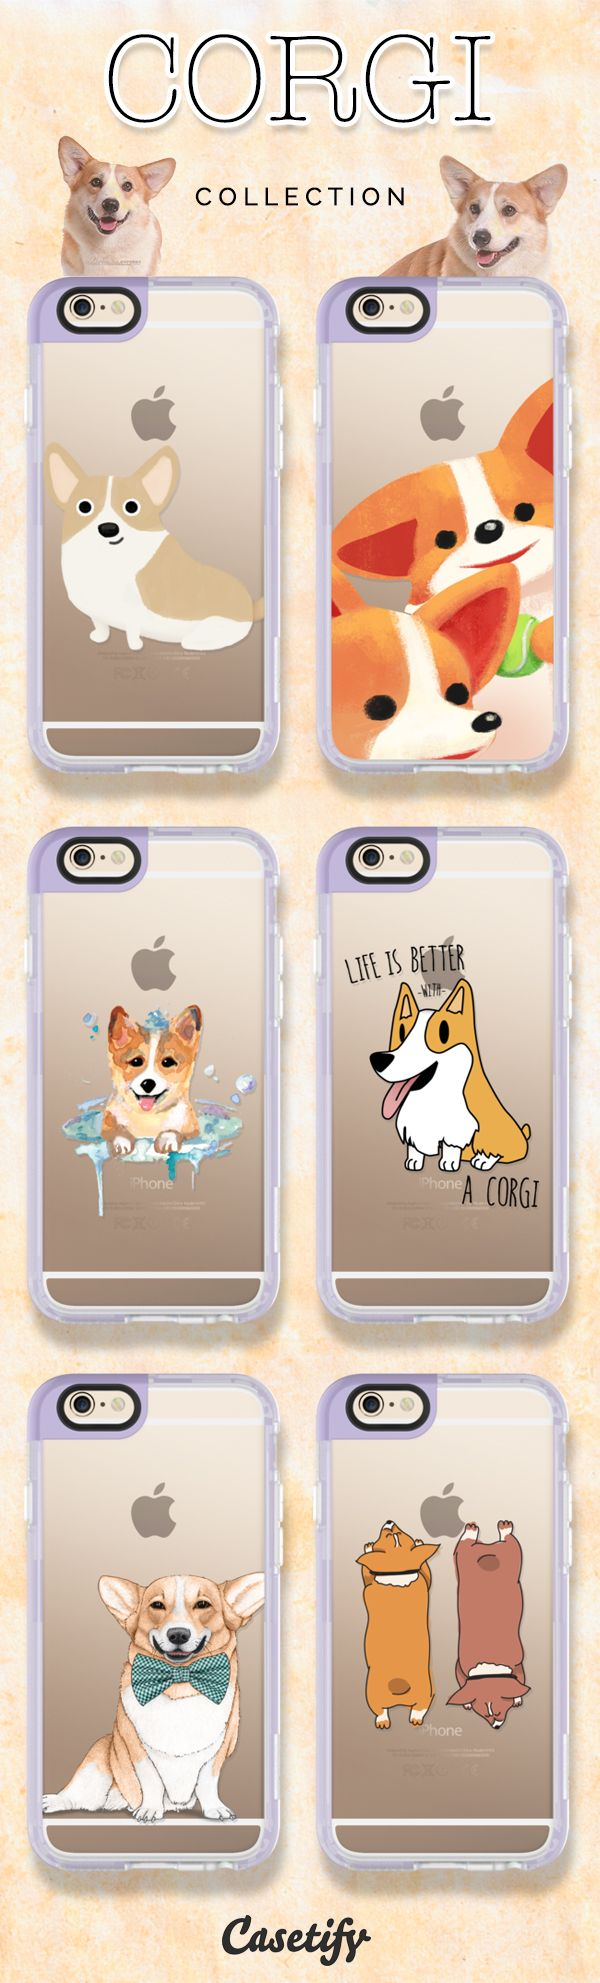 best phone cases images on pinterest mobile covers i phone